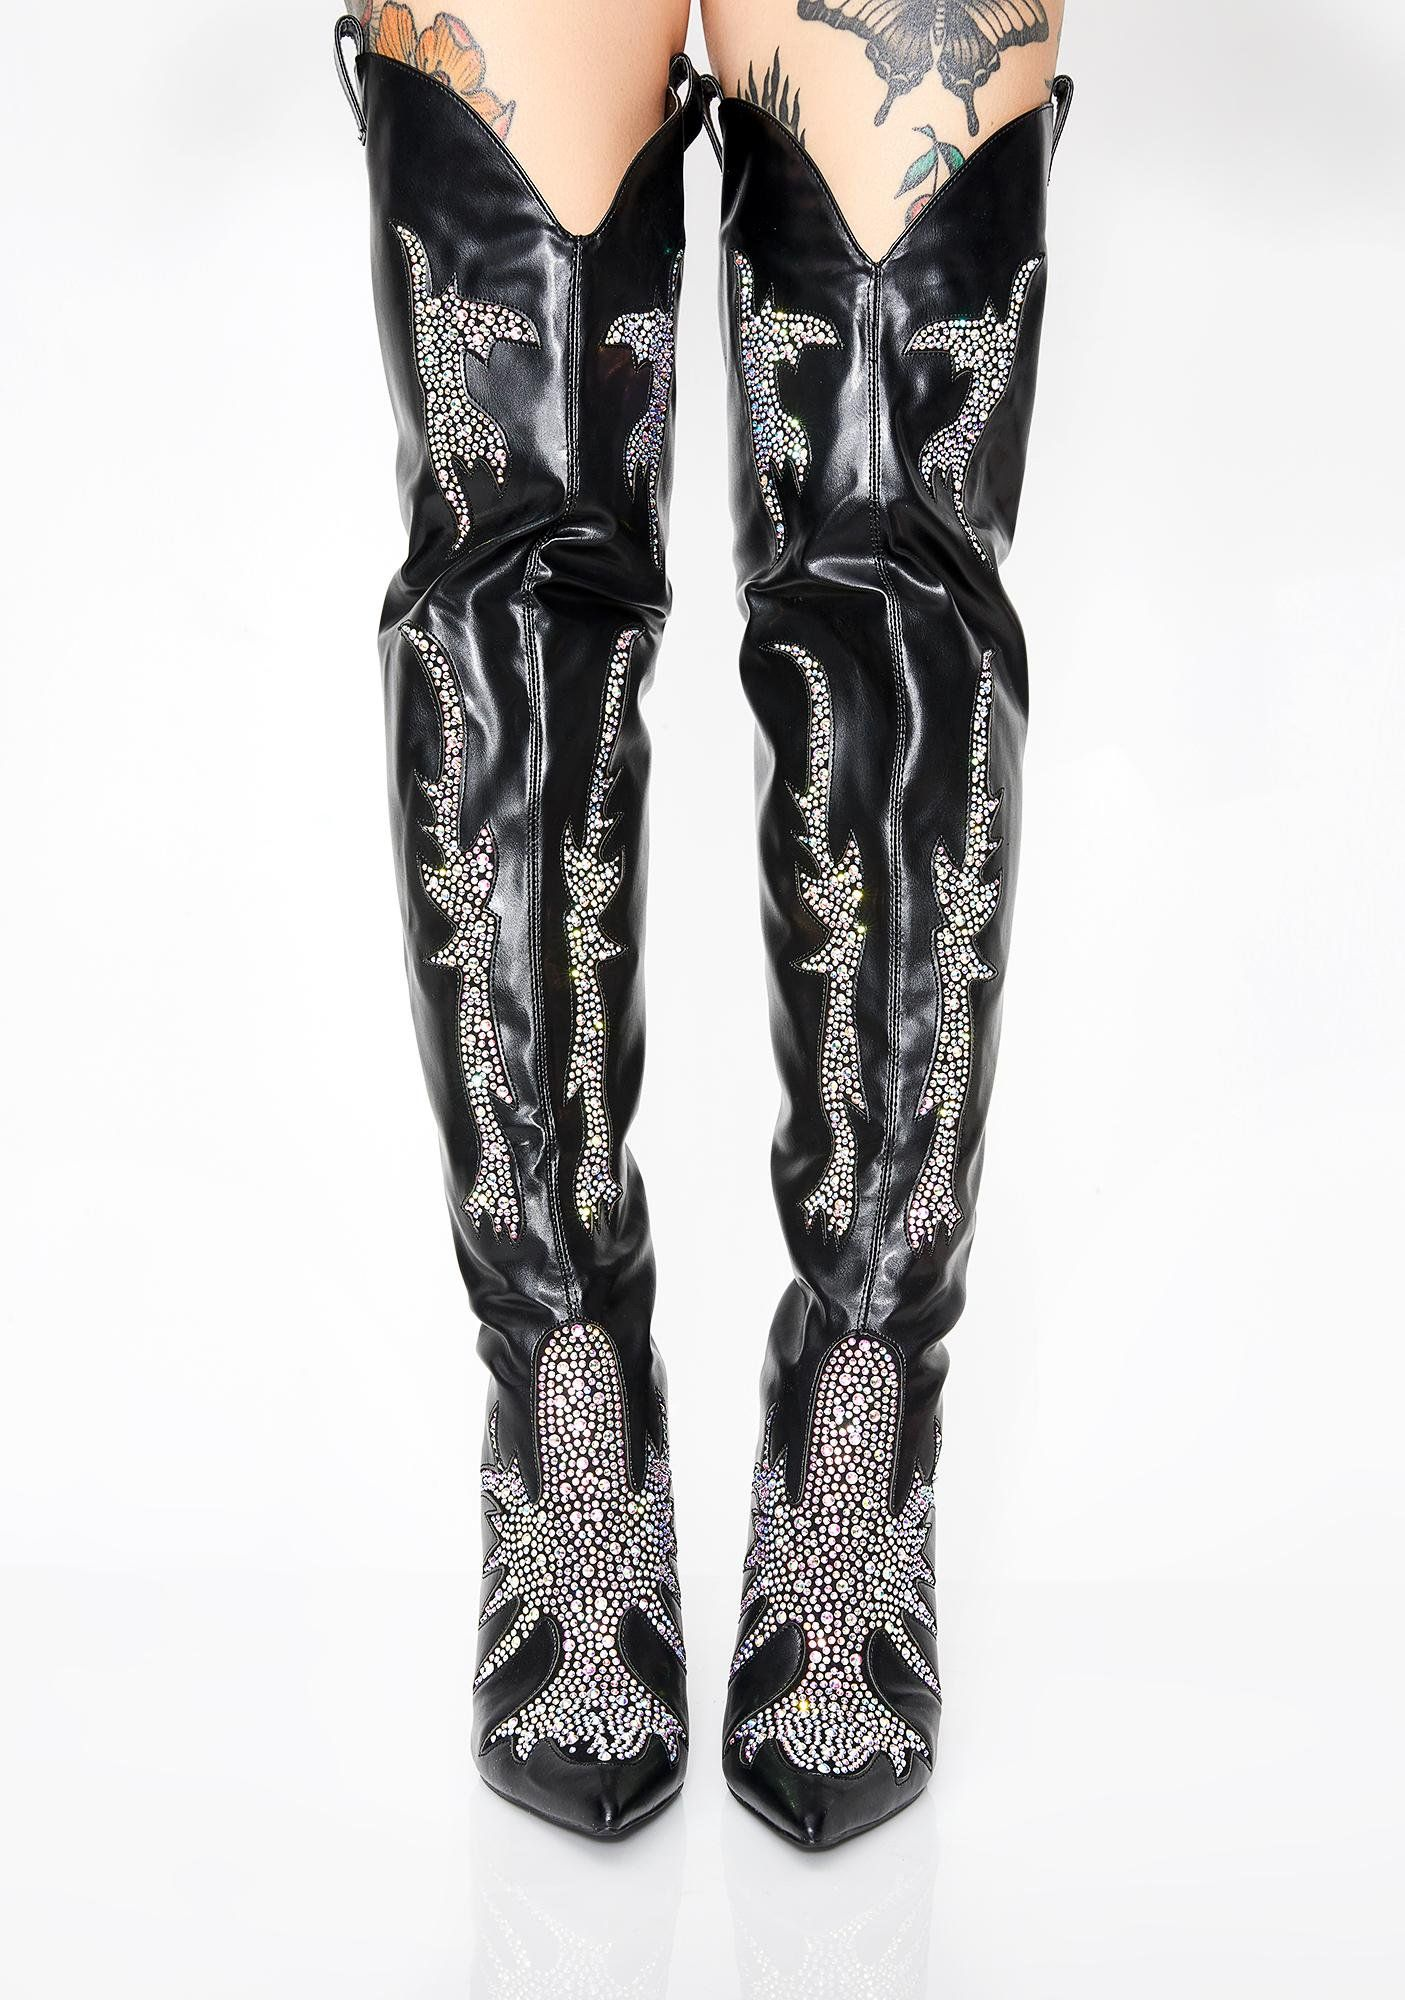 d2c0bbc82d7 Rhinestone Rider Thigh High Boots in 2019 | Shoe Fetish | Thigh high ...